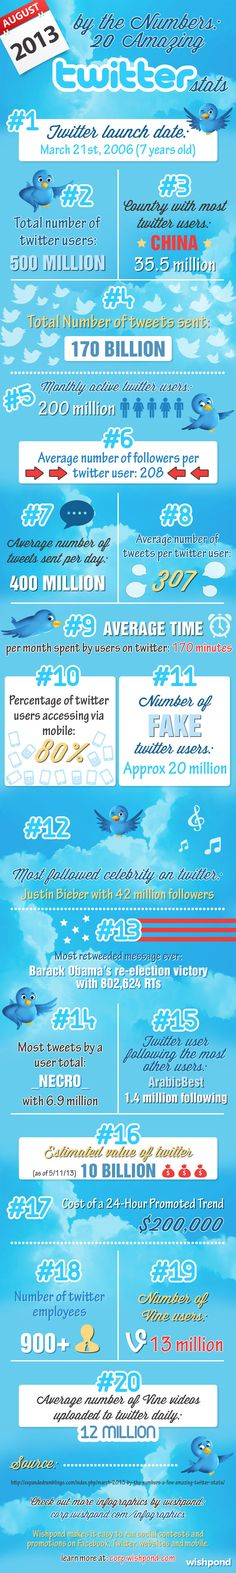 20 amazing Twitter stats #infographic